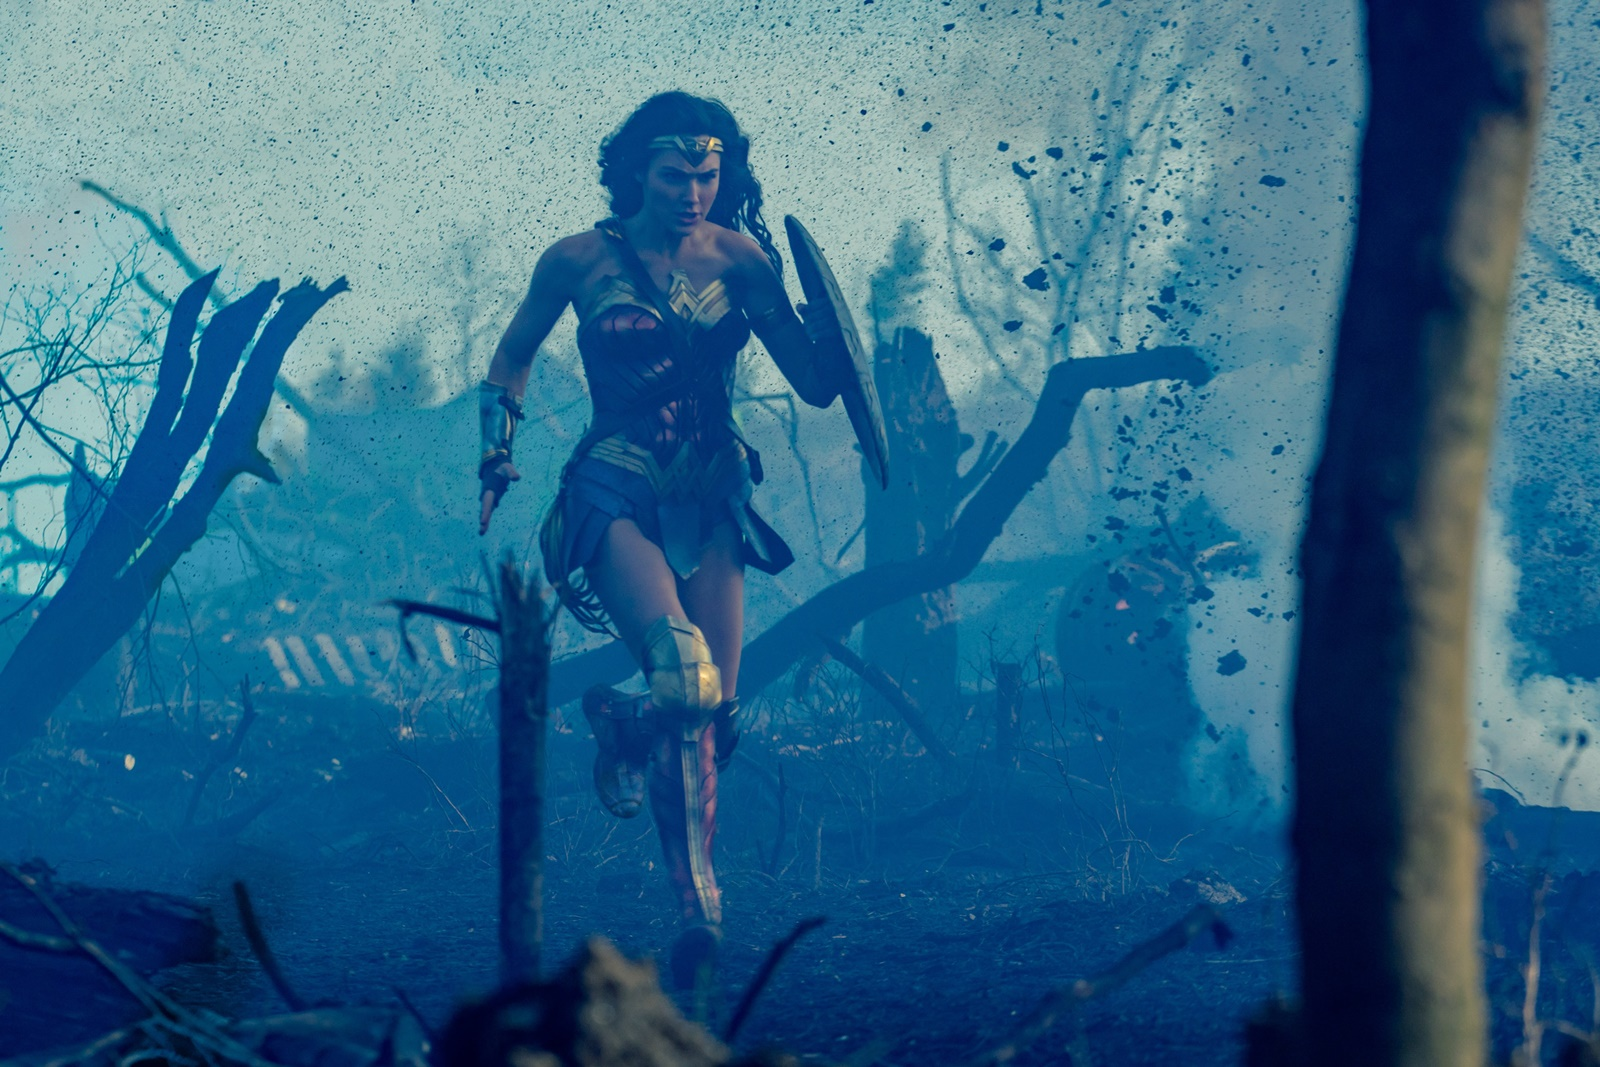 Wonder Woman, Gal Gadot, Chris Pine, Patty Jenkins, DC Comics, Warner Bros., Movie Review, superhero, action movie, Rawlins GLAM,